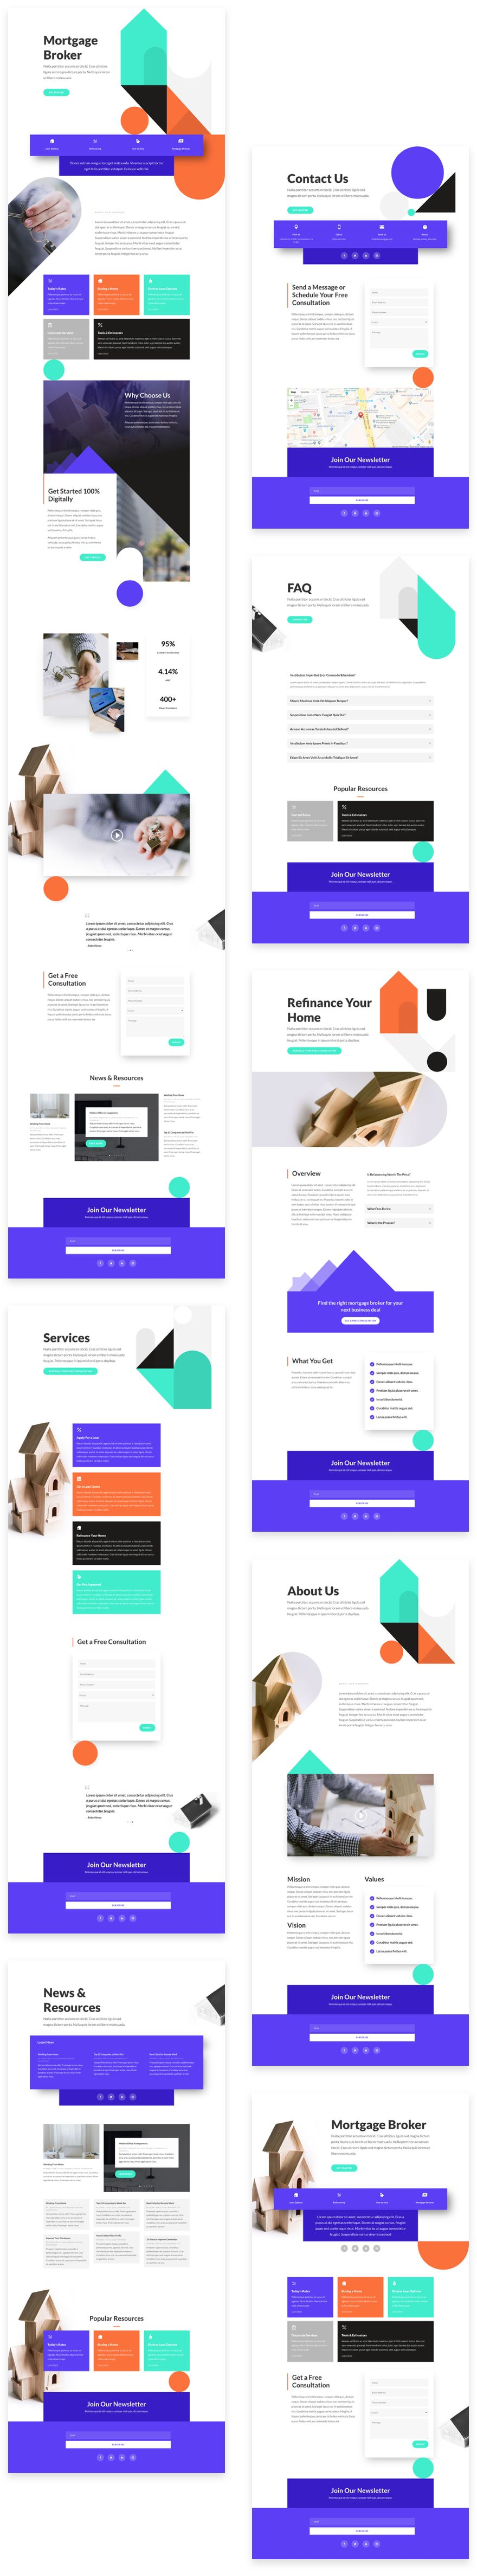 Mortgage Broker Divi Layout Pack